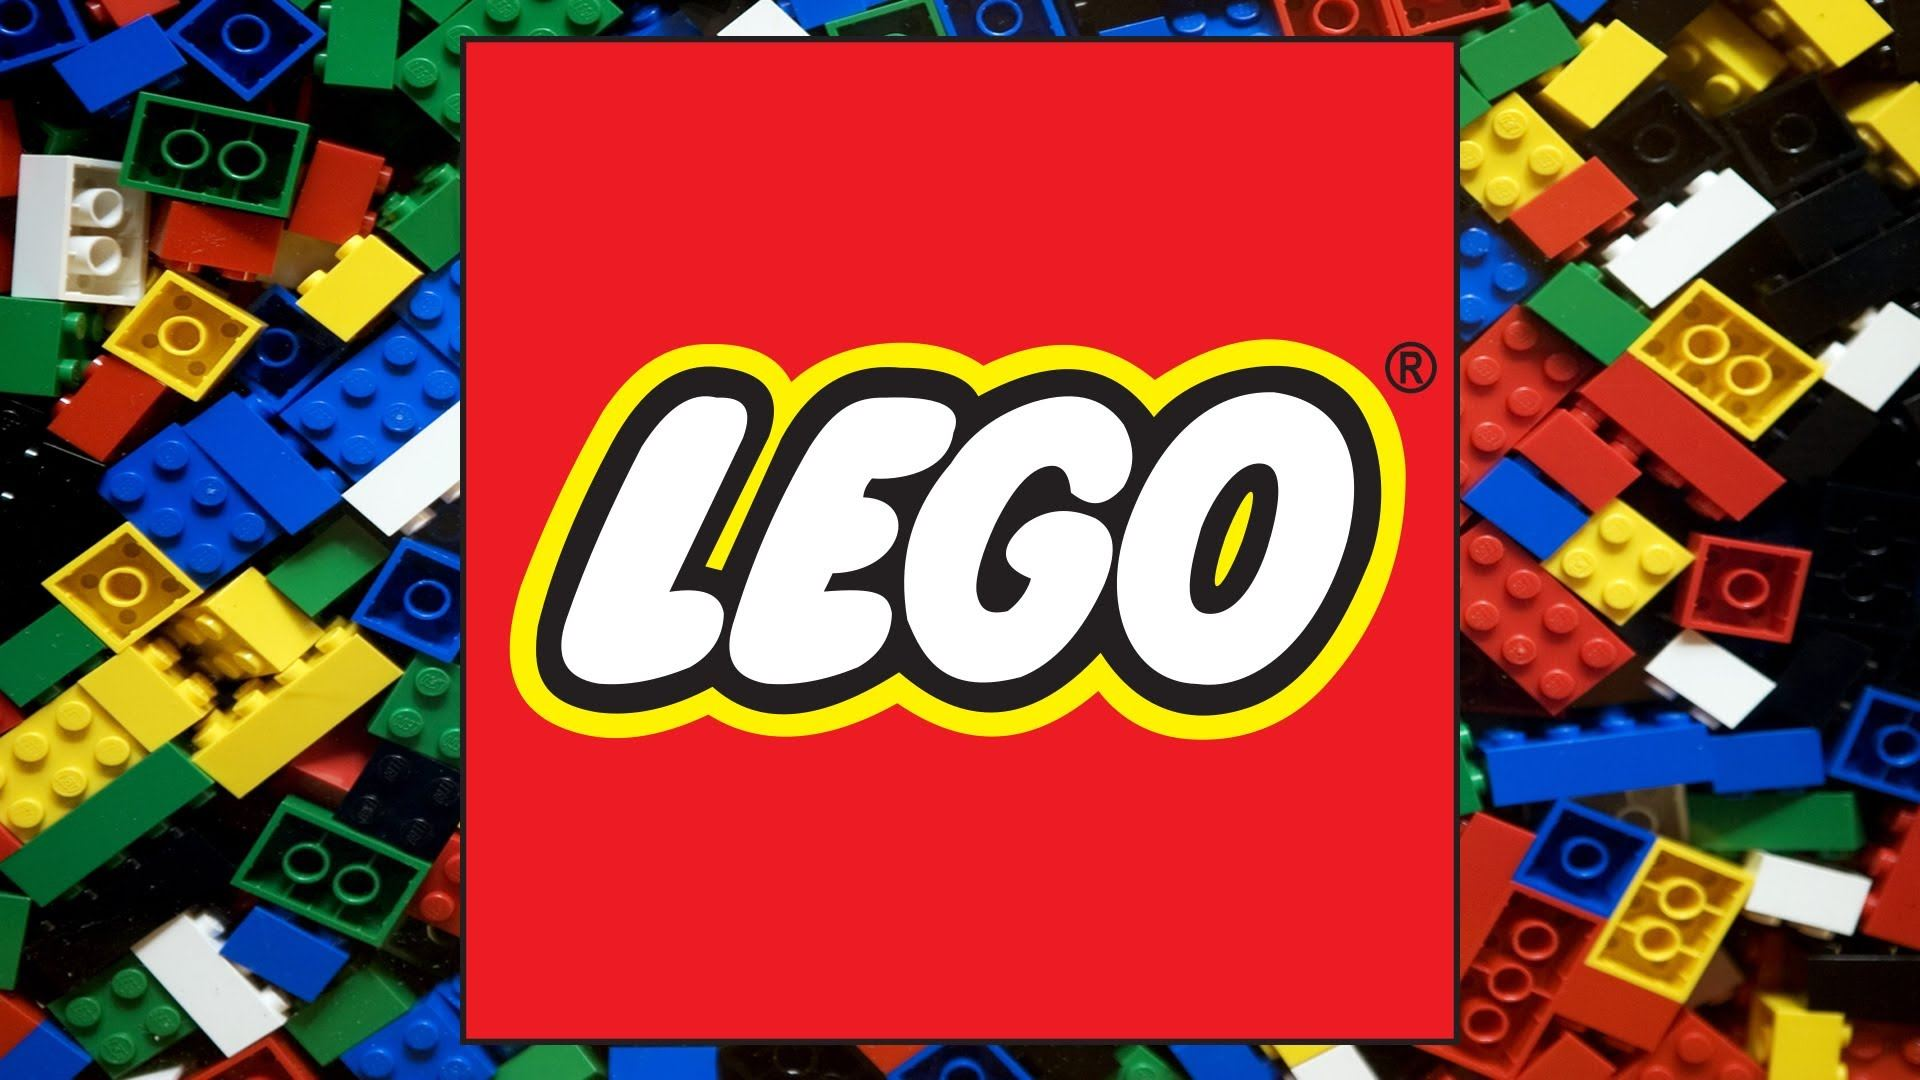 LEGO logo and LEGO blocks